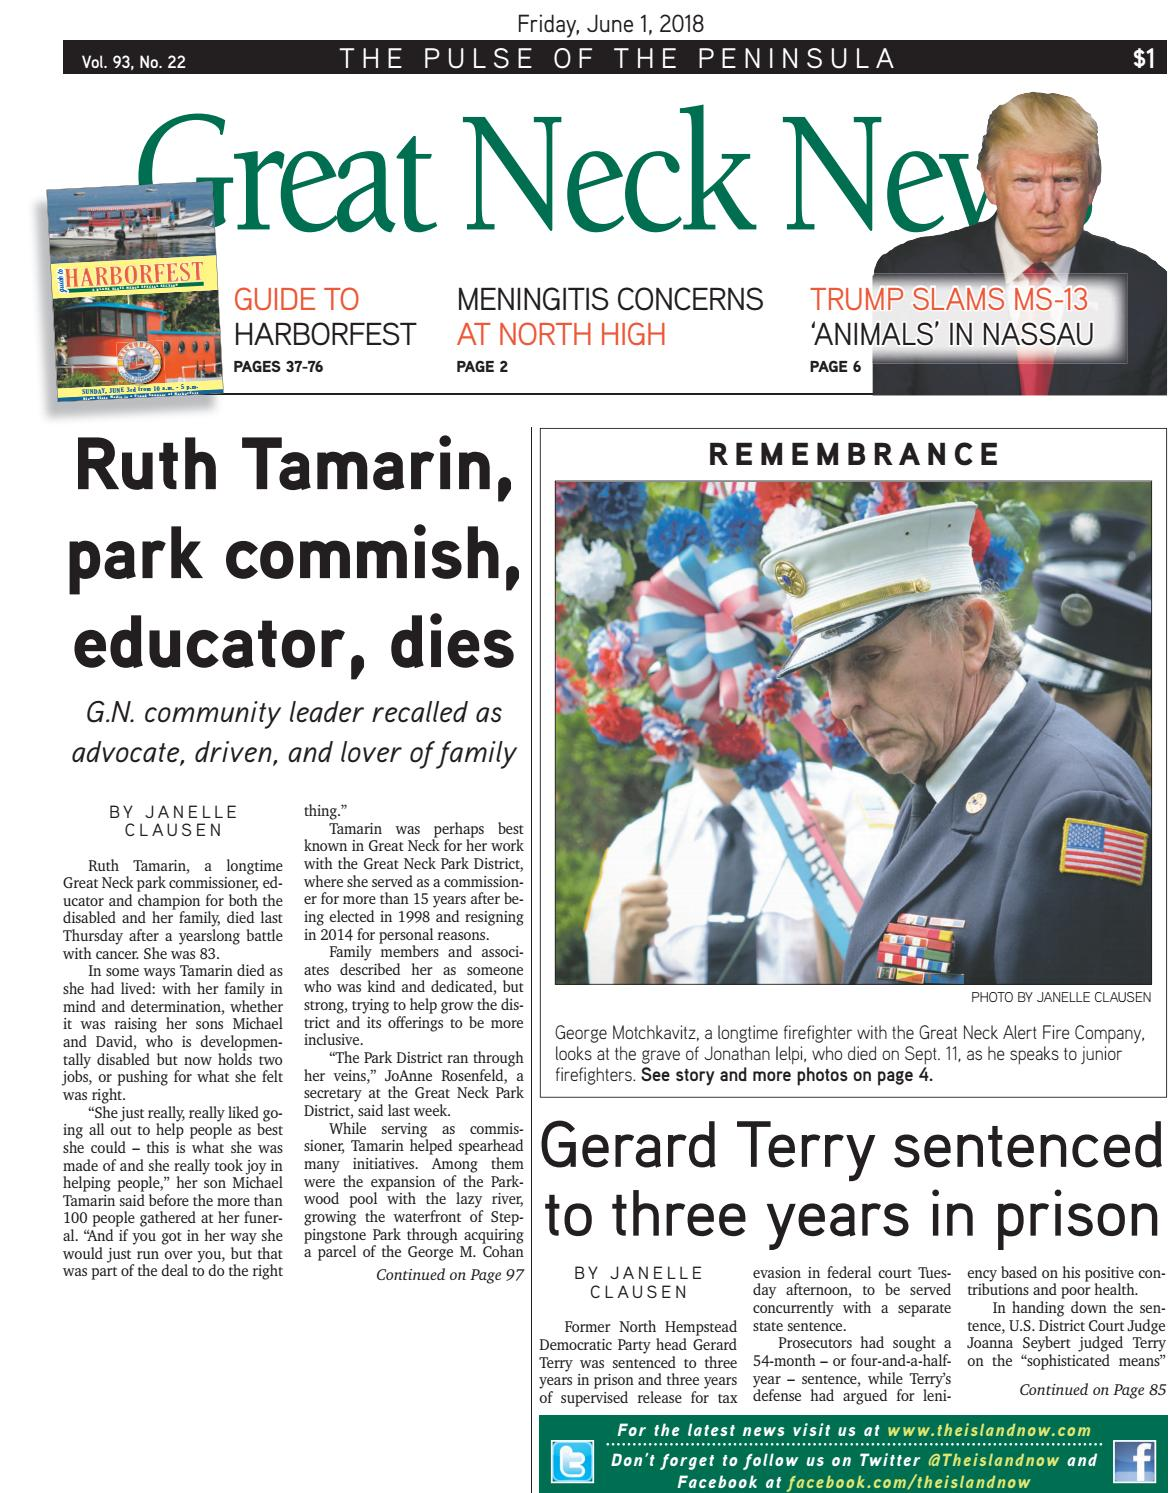 Great Neck News 2018 06 01 by The Island Now - issuu 46f637eb3c5